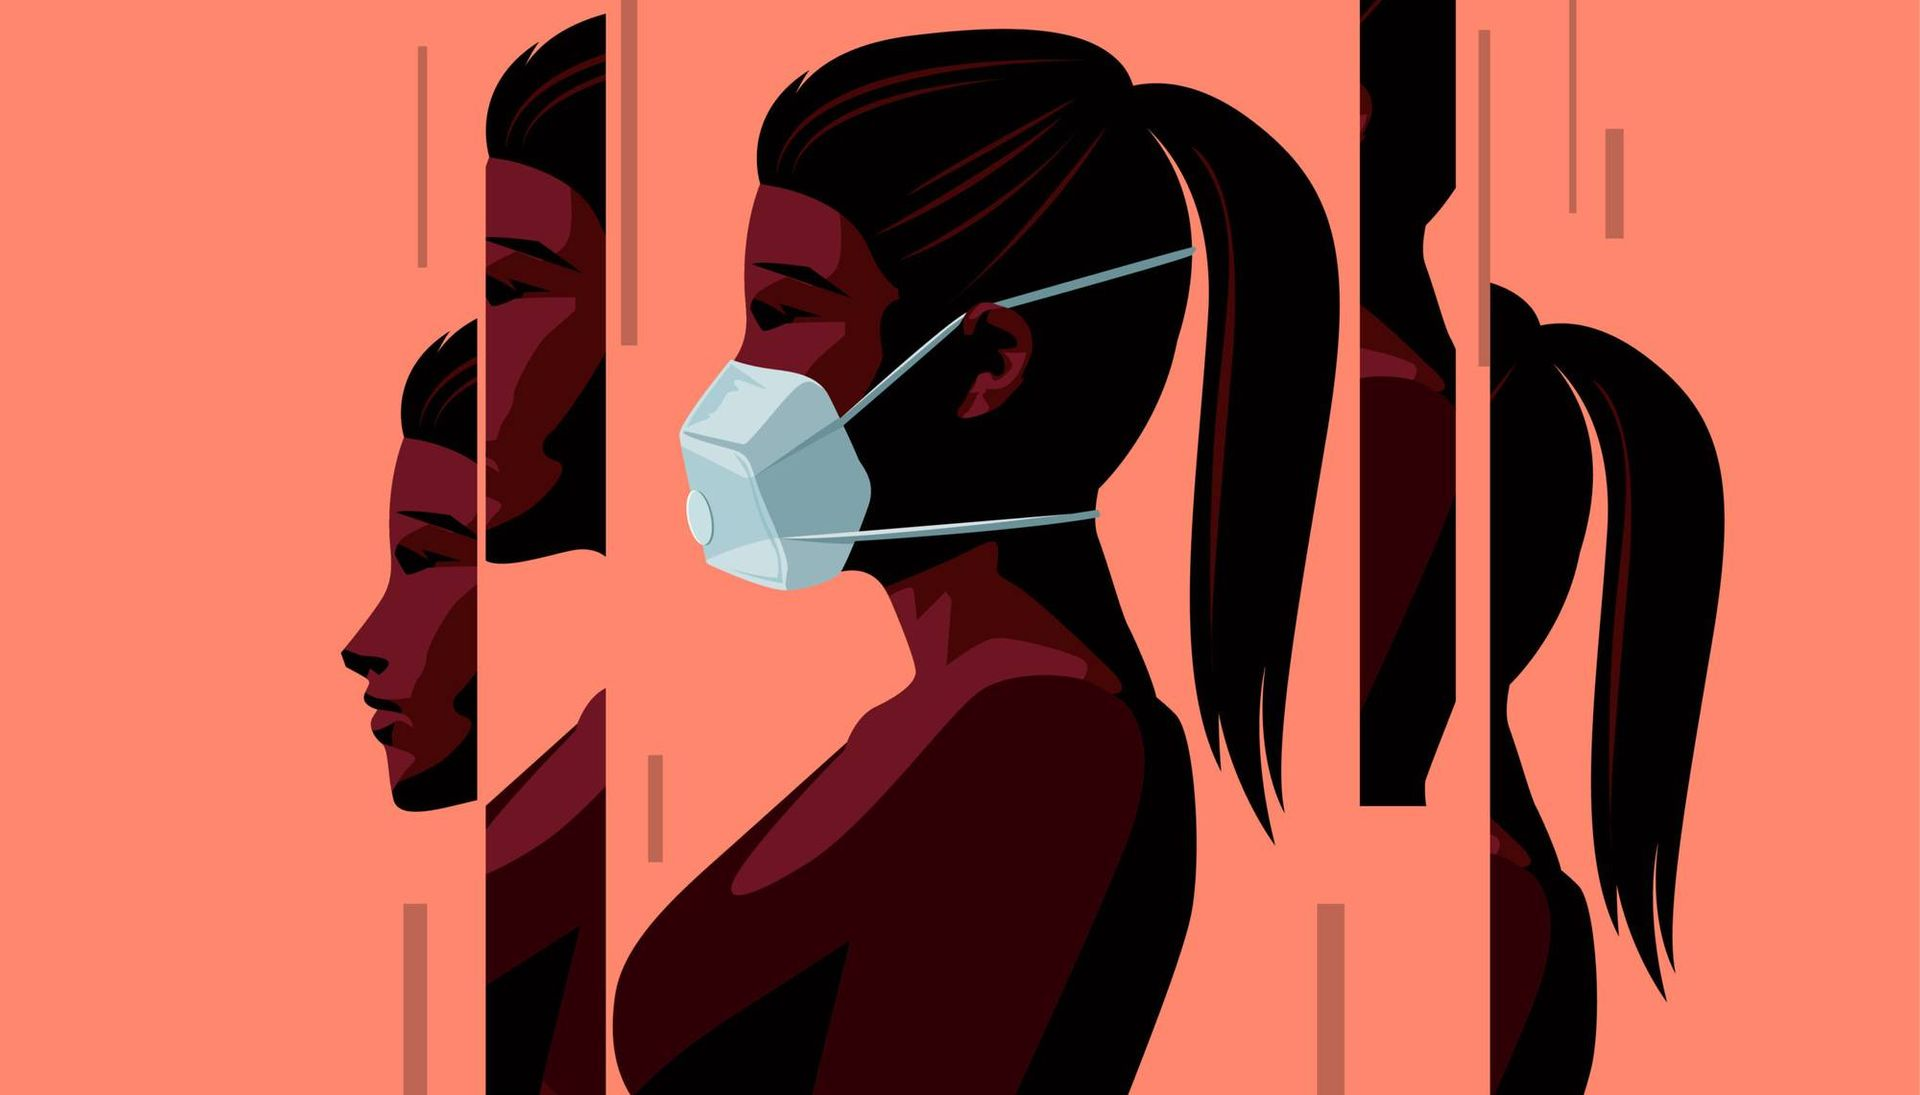 Illustration of a woman wearing a face mask during the Covid-19 coronavirus outbreak.